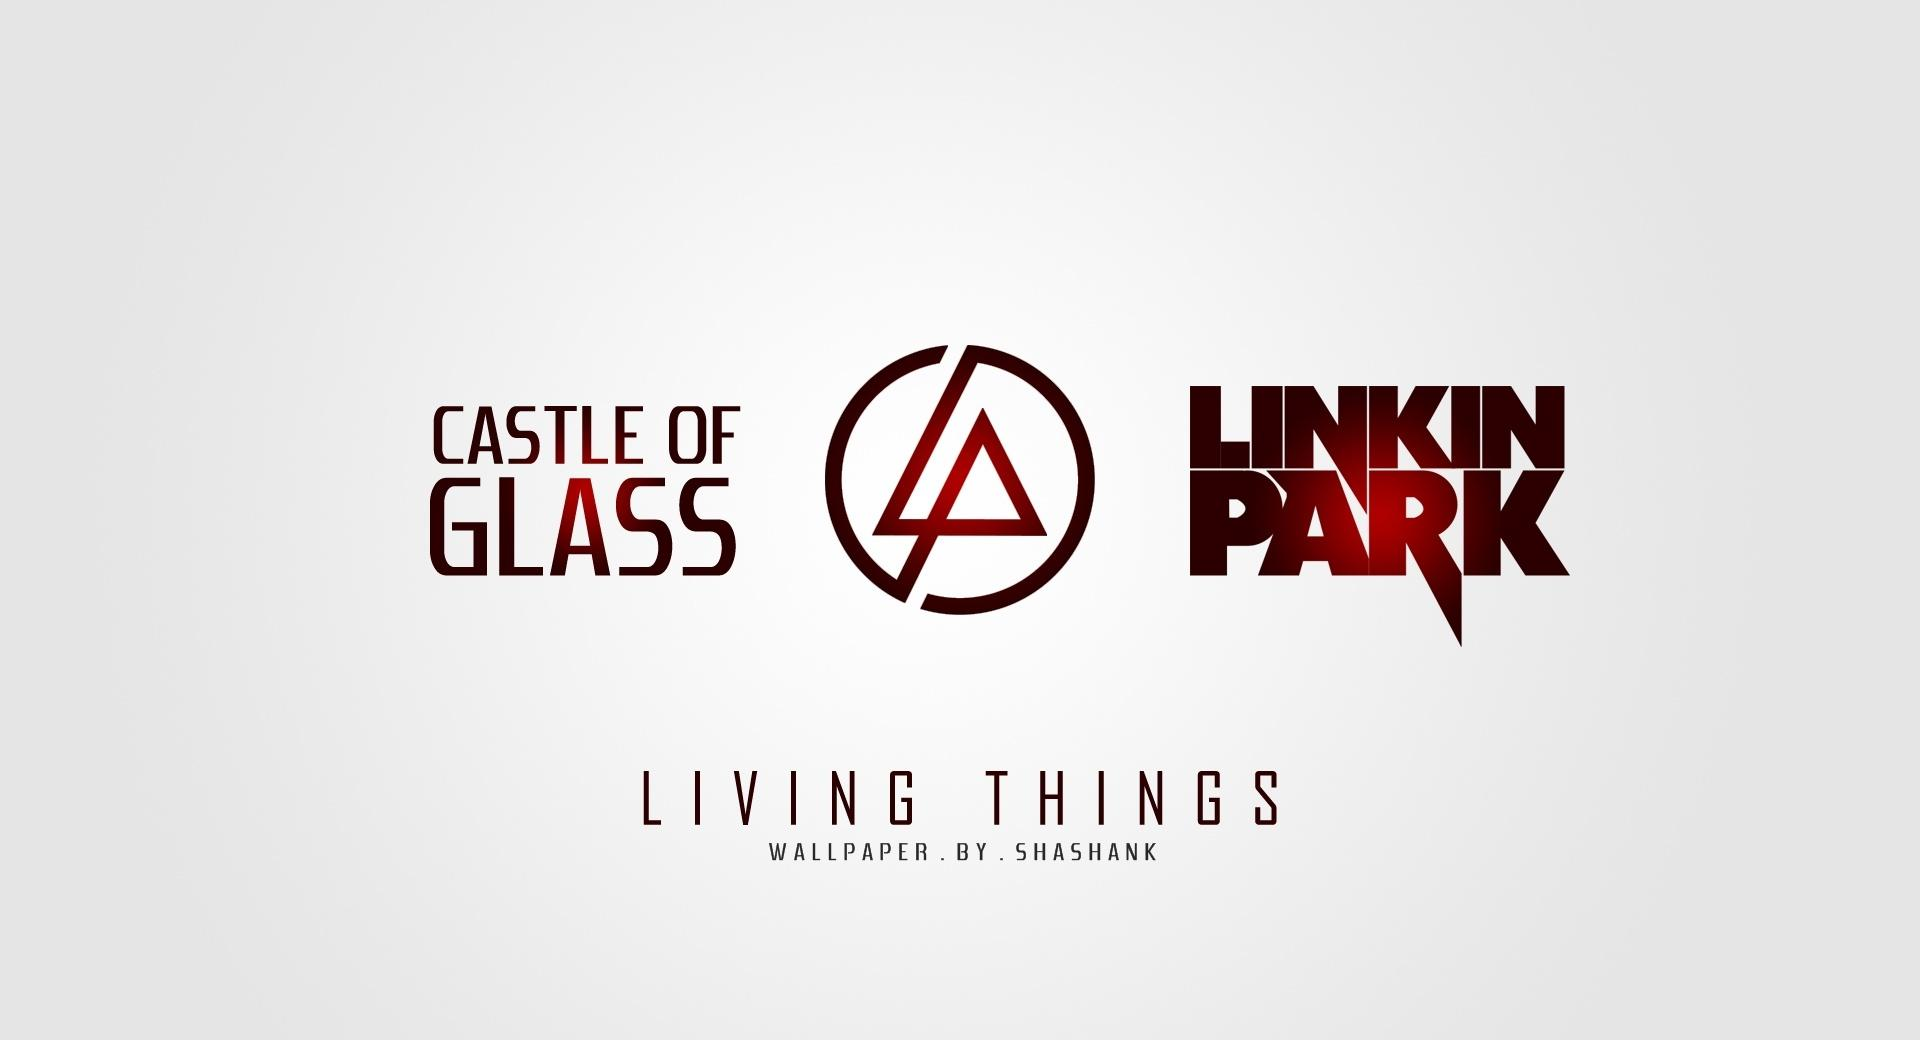 Castle Of Glass By Linkin Park Wallpapers Hd Quality Linkin Park